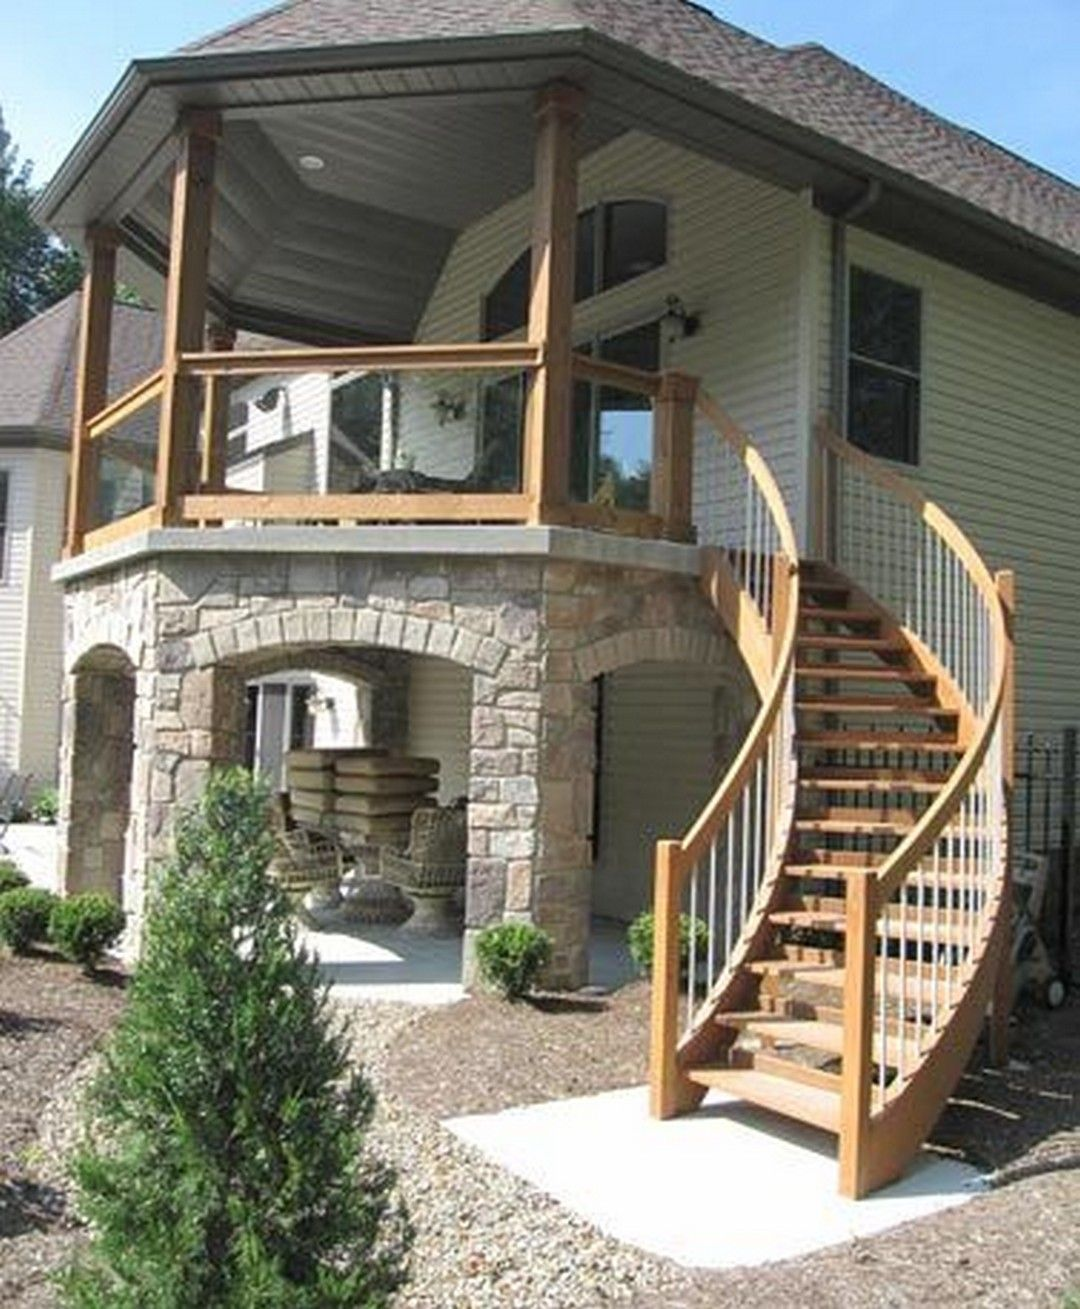 Best Second Floor Deck With Screened In Porch Design And Stairs Outdoor Stairs Patio Deck Designs 400 x 300